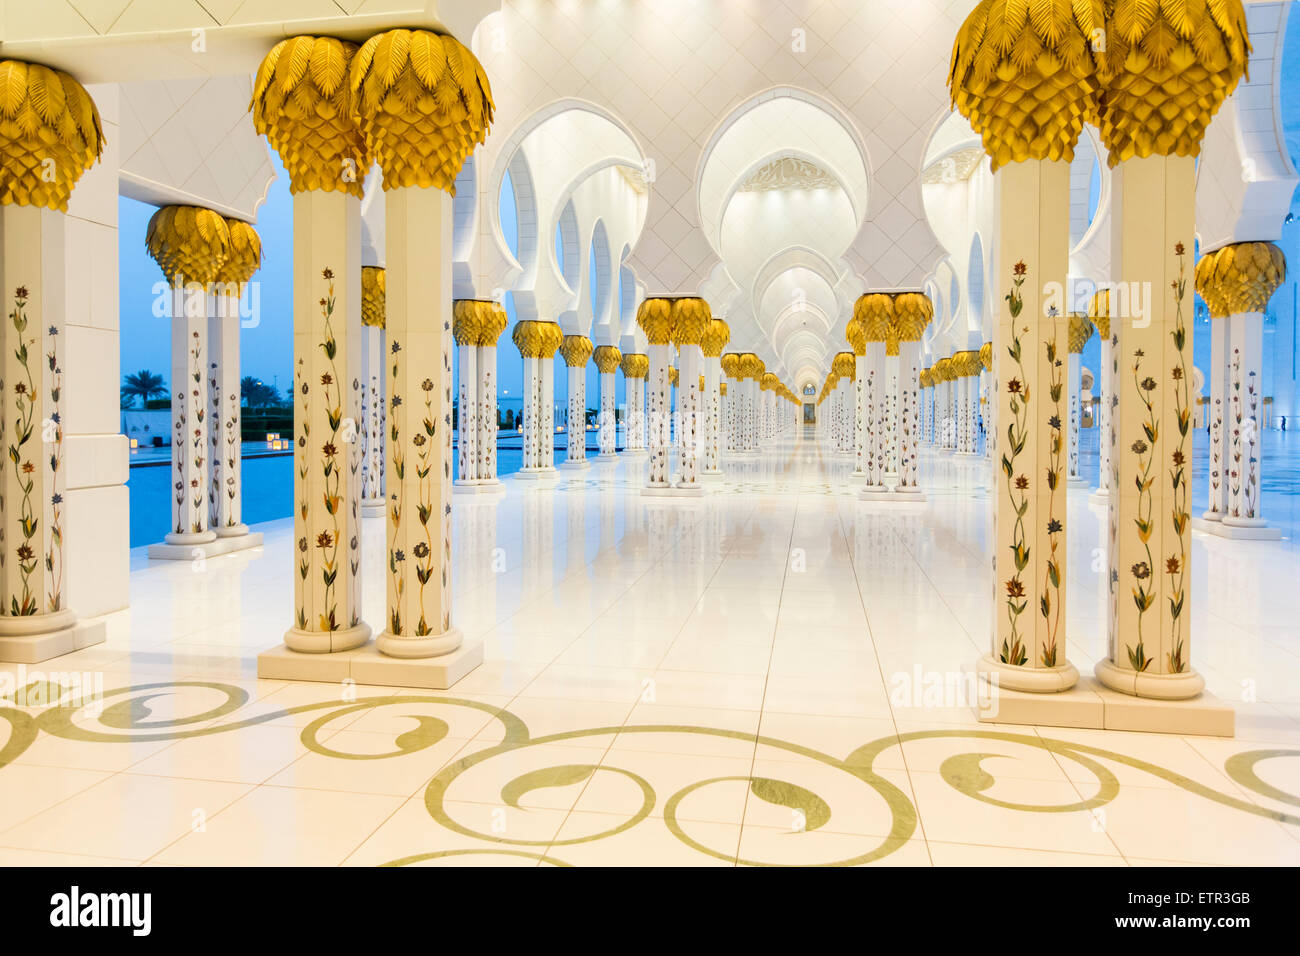 Sheikh Zayed Mosque in Abu Dhabi. - Stock Image